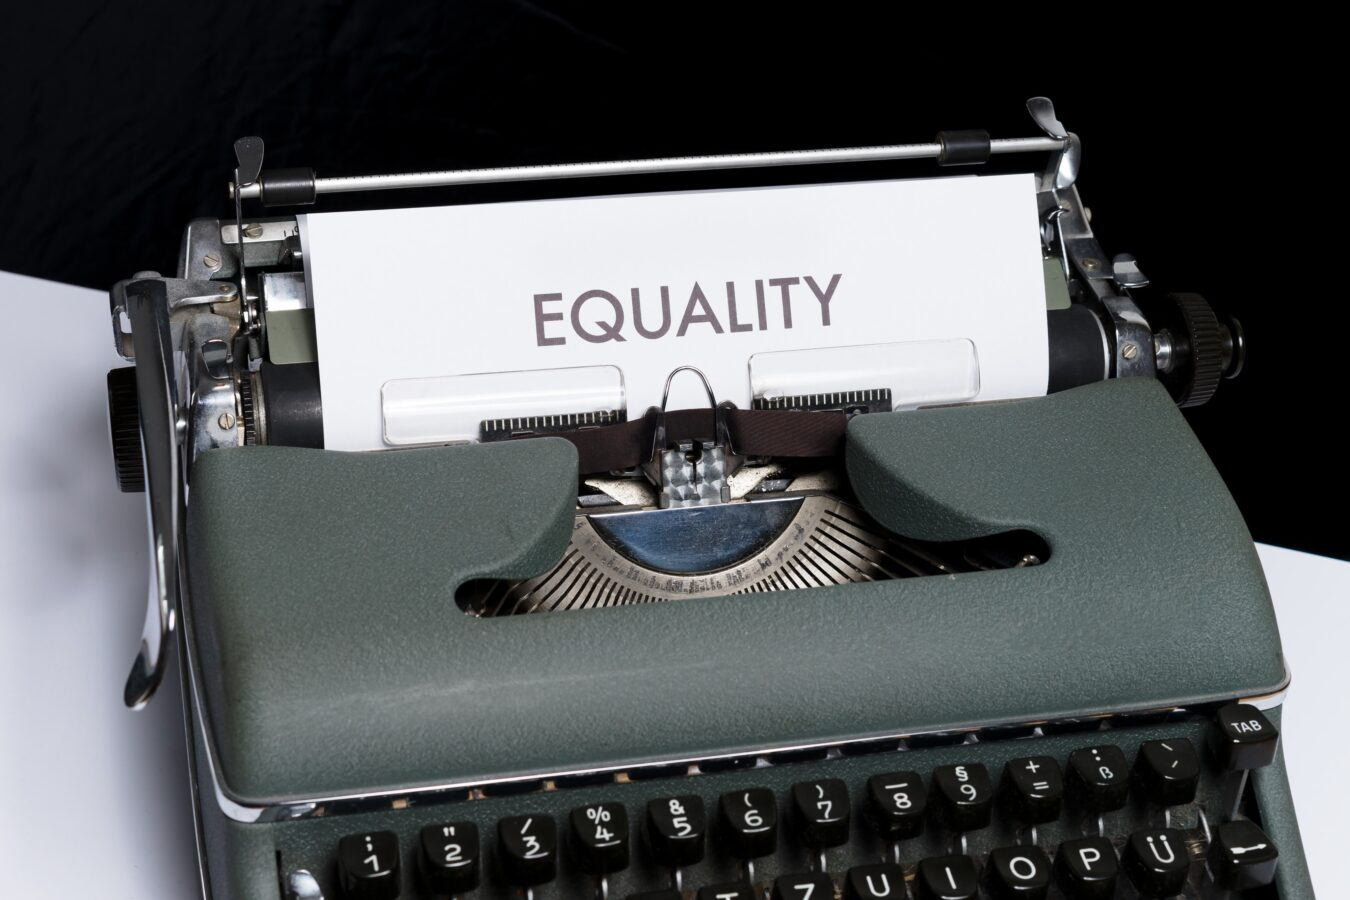 an image showing typed pay equality on a paper